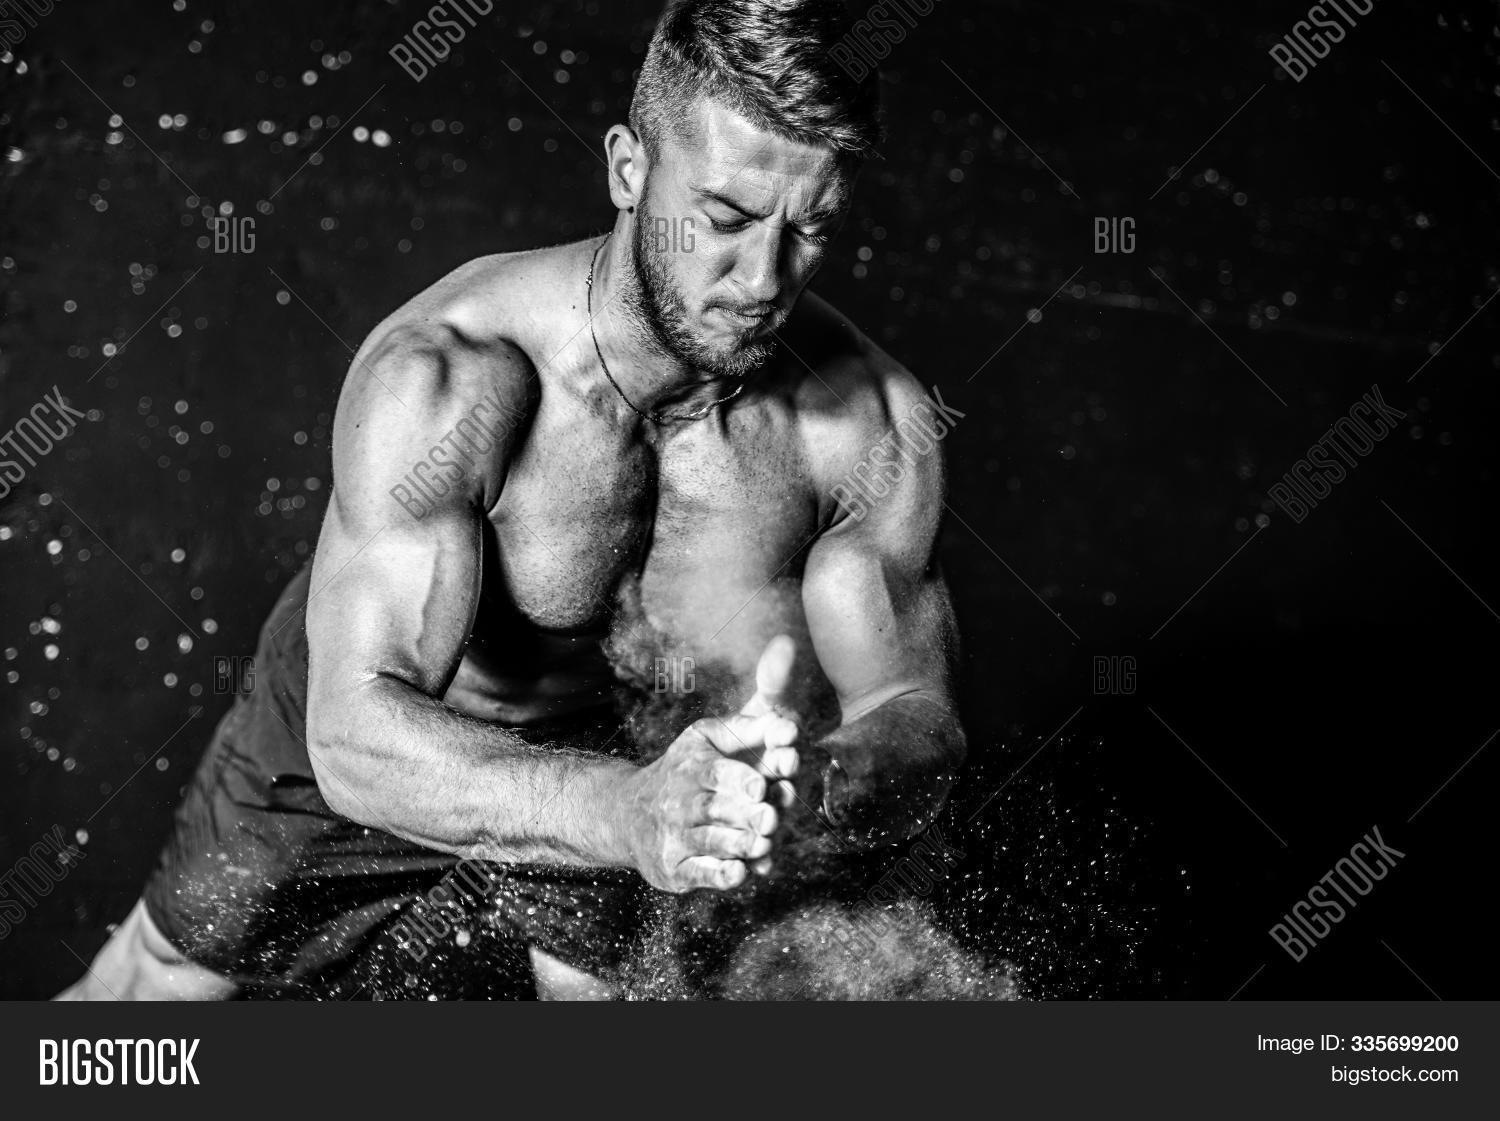 achievement,active,arms,athletic,attractive,barbell,big,body,caucasian,clap,class,club,confident,cross,doing,effort,energy,exercise,fit,floor,functional,gym,hands,high,indoors,jump,man,masculine,men,muscles,muscular,people,person,personal,physical,plank,plate,power,push,shirtless,sporty,strength,strong,sweat,sweaty,trainer,training,weight,workout,young